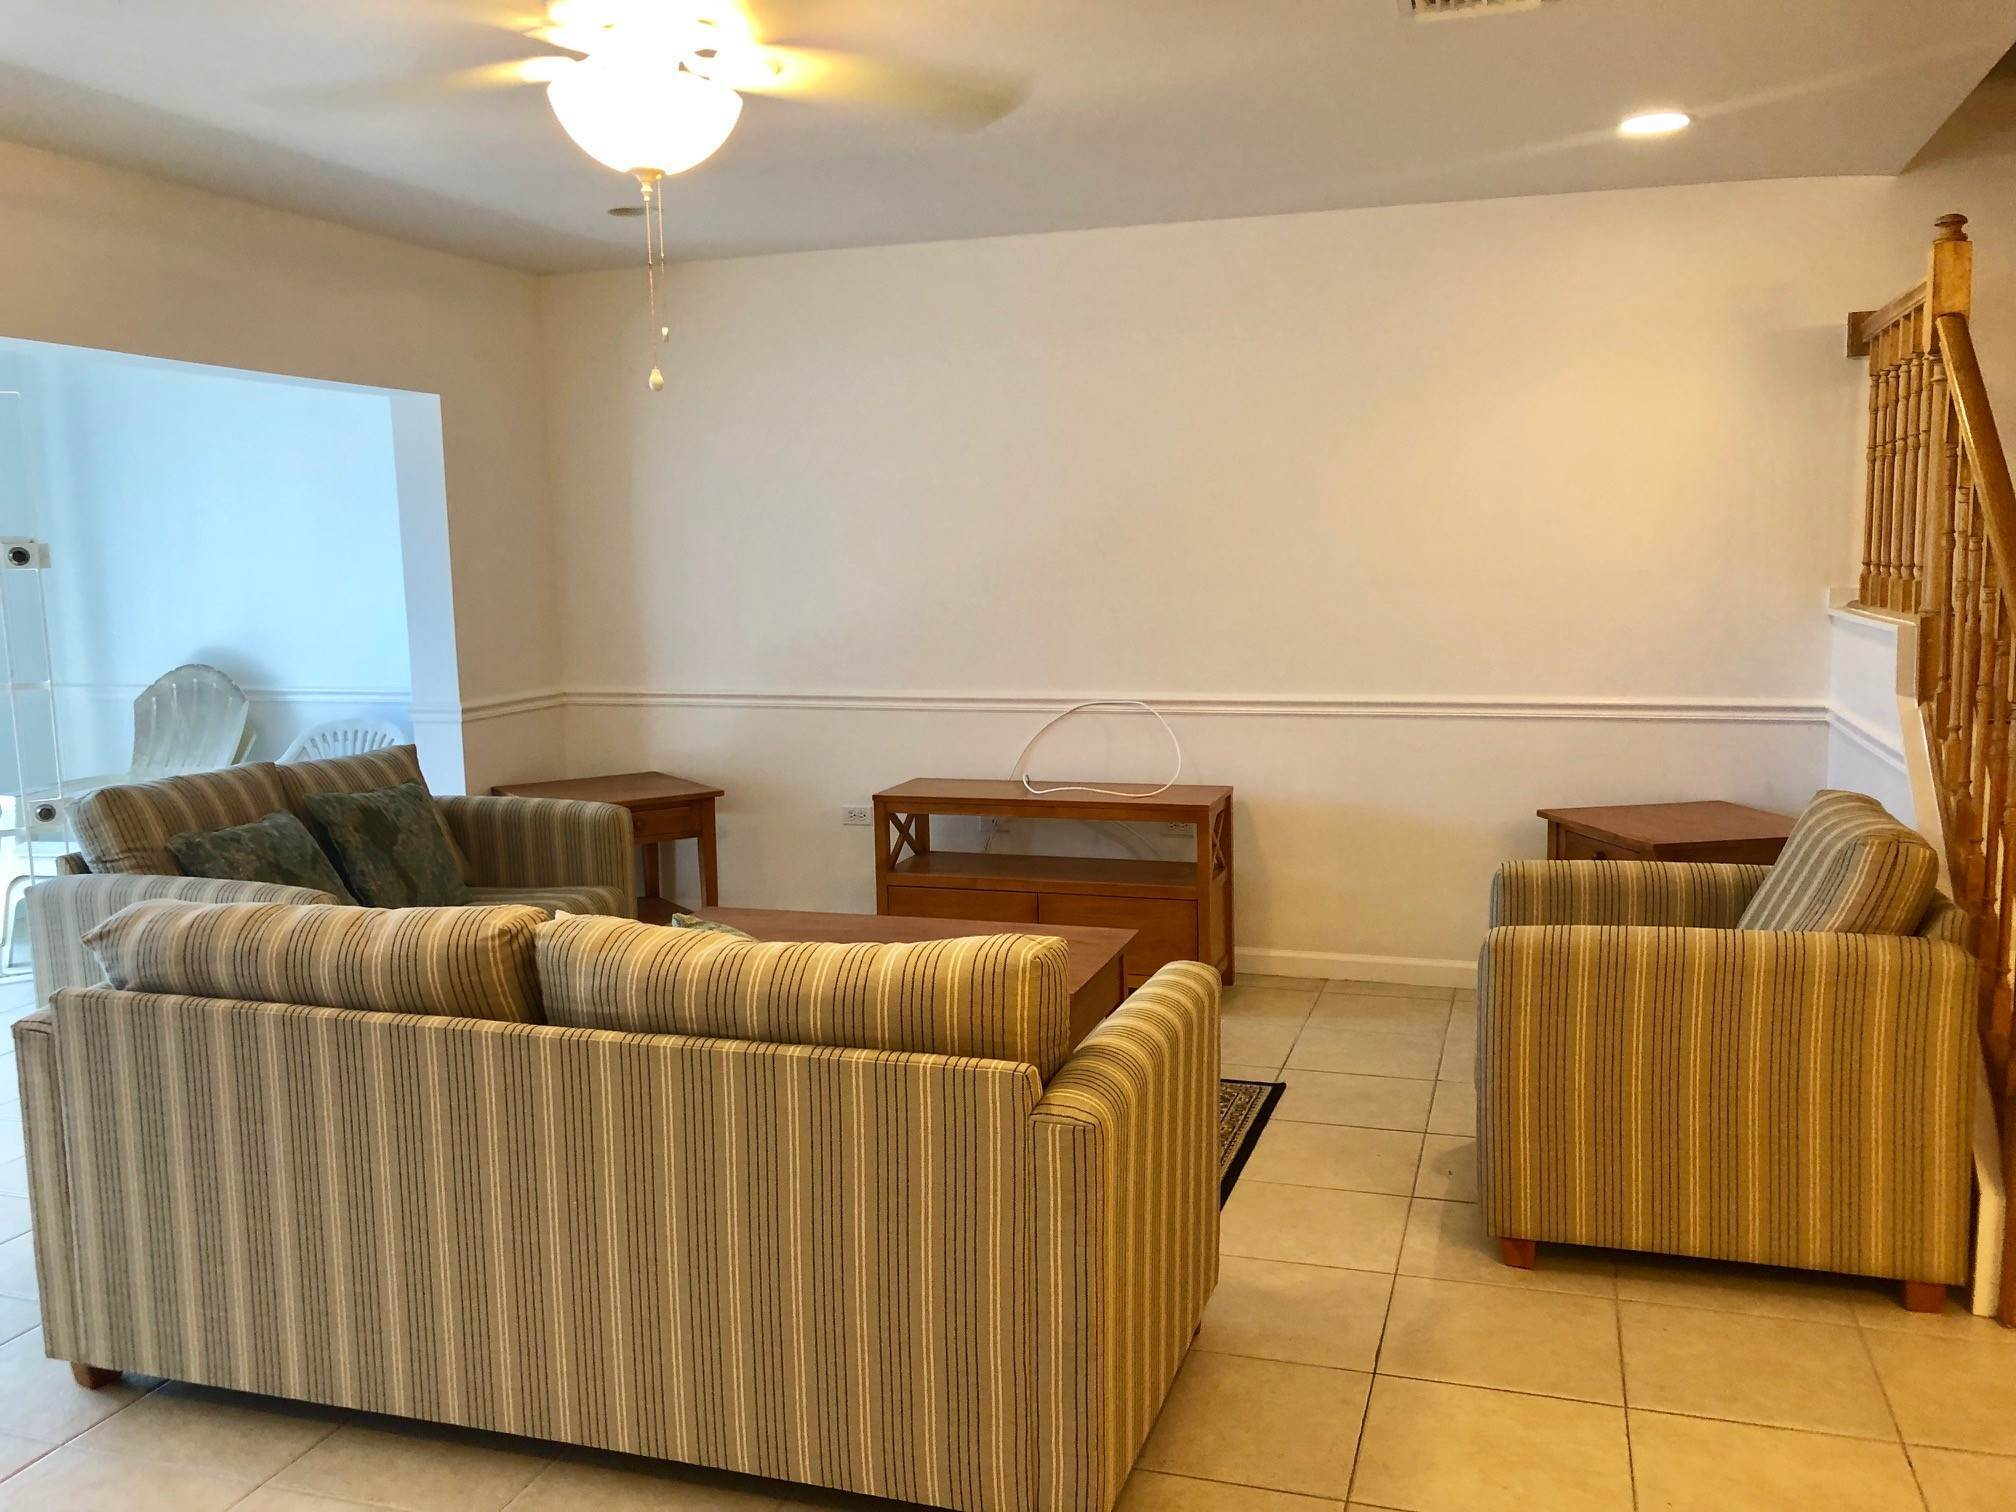 2. Co-op / Condo for Sale at Spacious 3 bedroom condo near town and Cable Beach - MLS 38821 Nautica, Nassau And Paradise Island, Bahamas